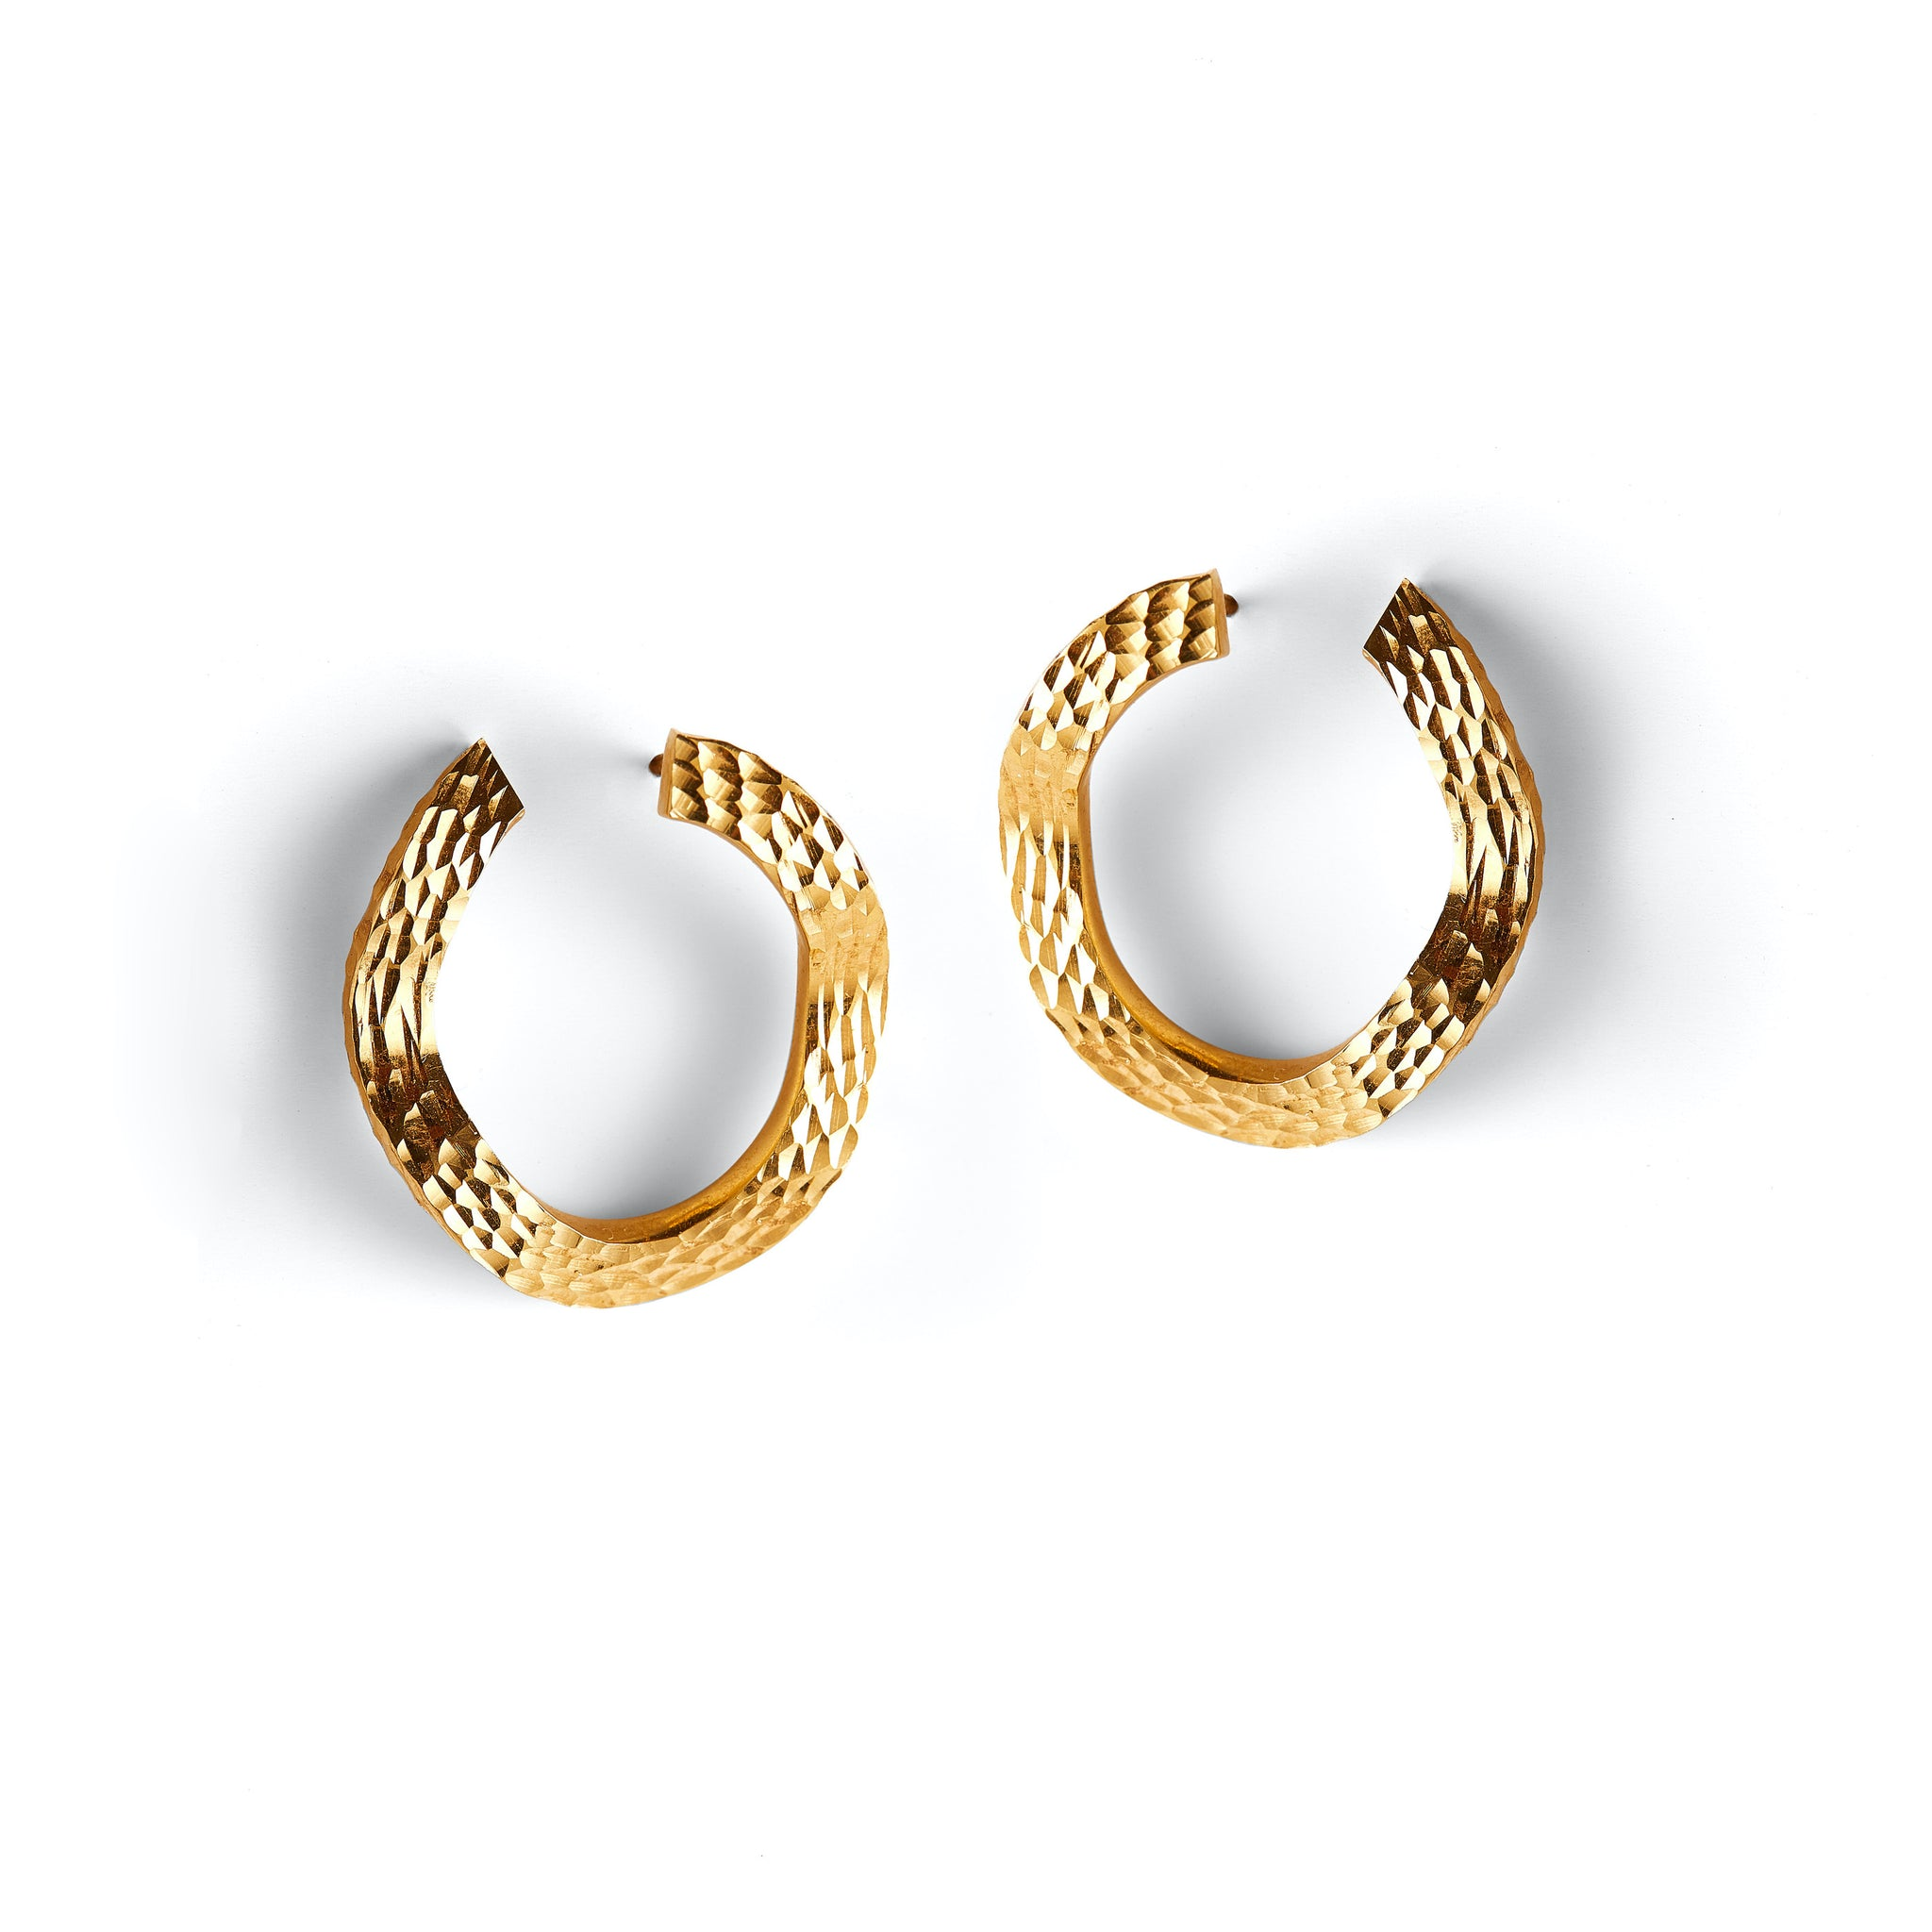 Écorce Dorée Earrings